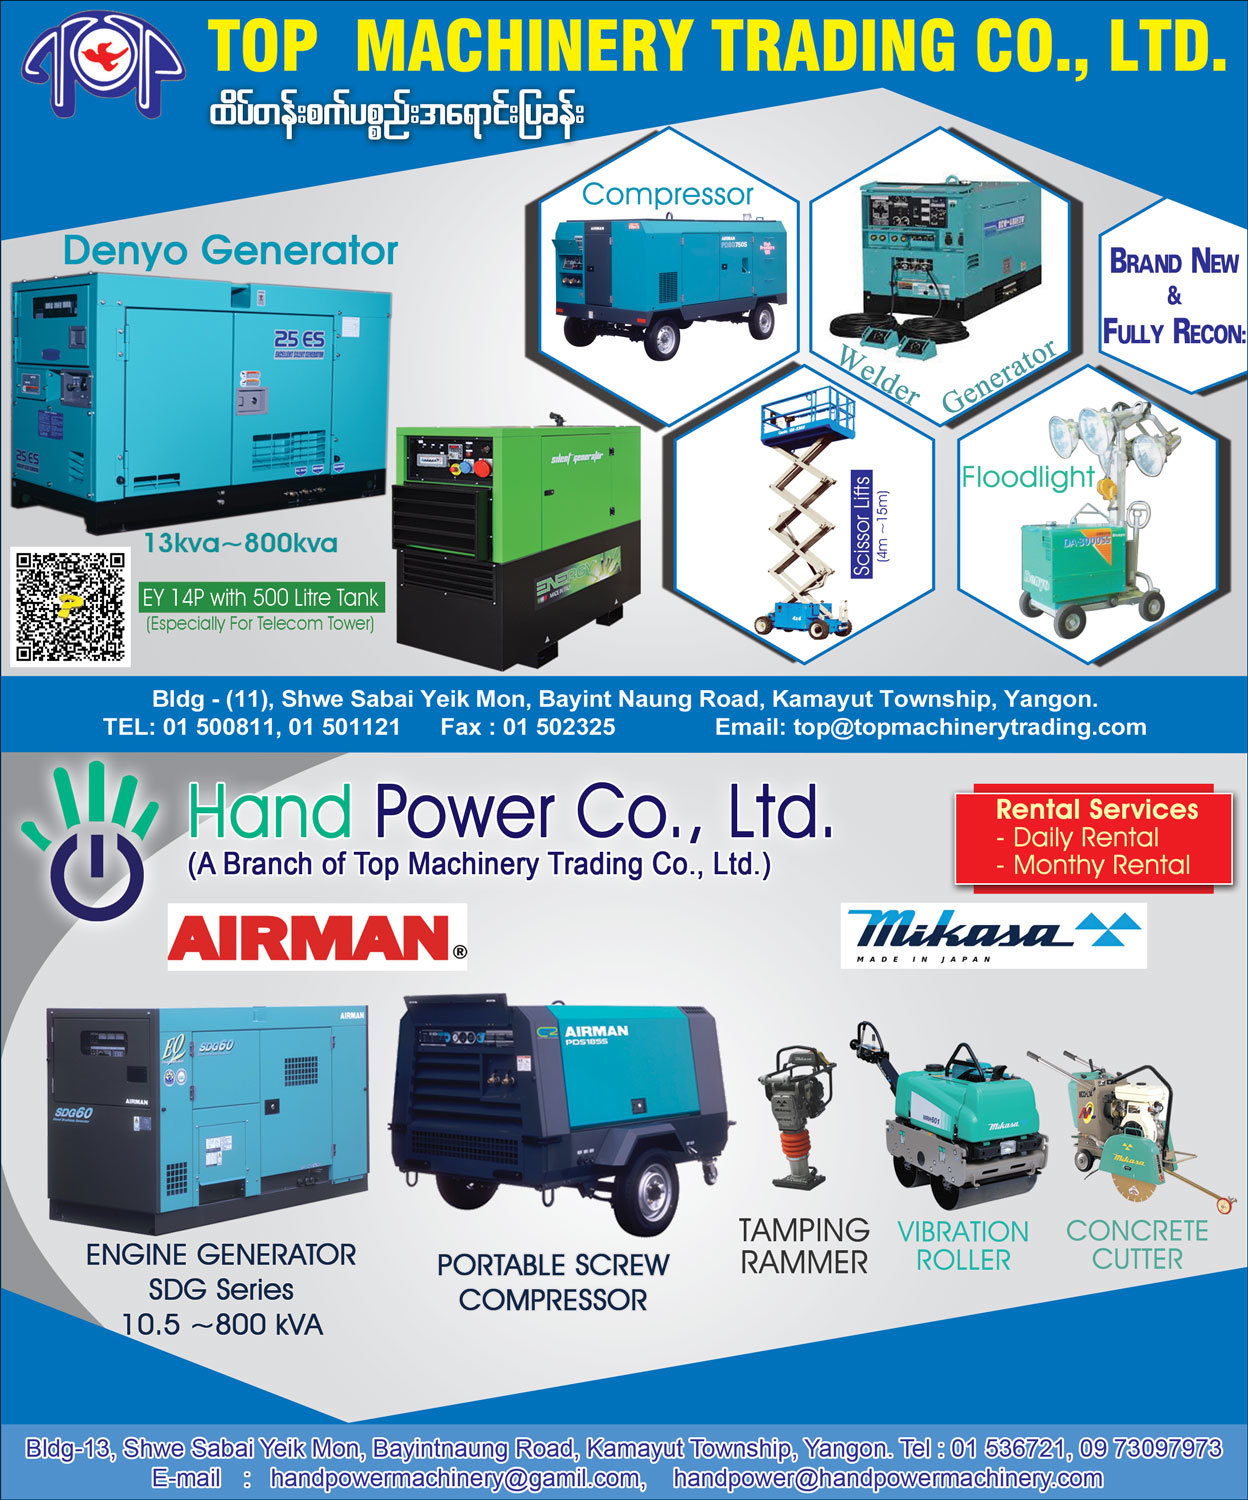 Top-Machinery-Trading-Co-Ltd_Generators-&-Transformers-Sales-Services-&-Rental_3632.jpg